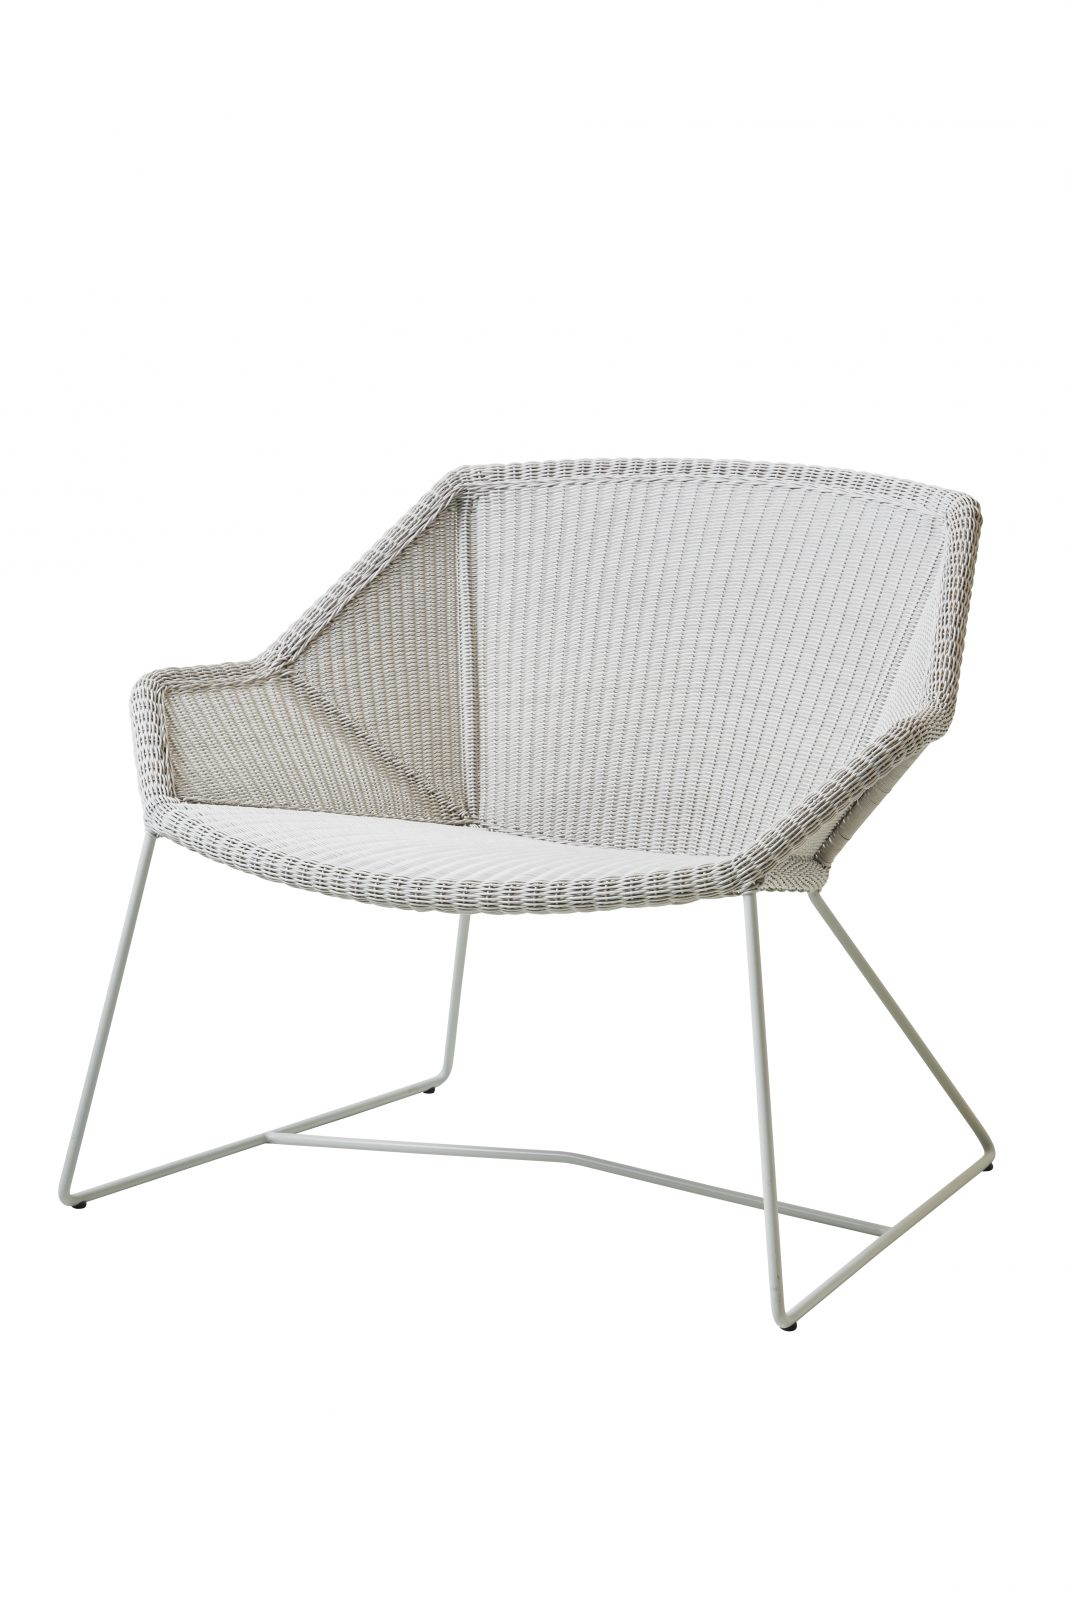 cane line breeze lounge chair available at nordic urban in berlin. Black Bedroom Furniture Sets. Home Design Ideas